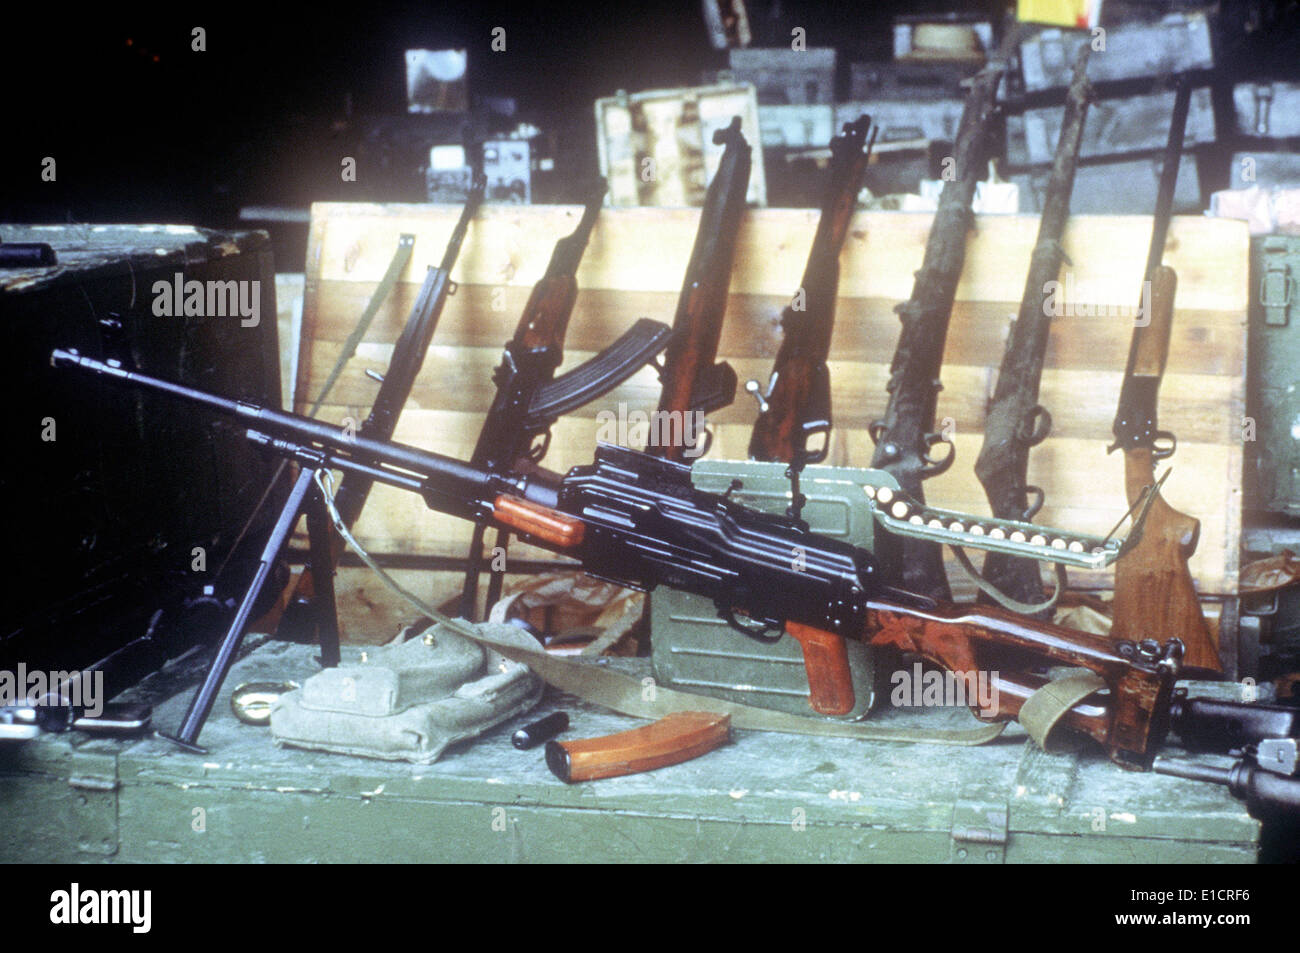 A Soviet-made 7.62mm PKM light machine gun and other weapons seized in Operation Urgent Fury during the invasion of Grenada. - Stock Image